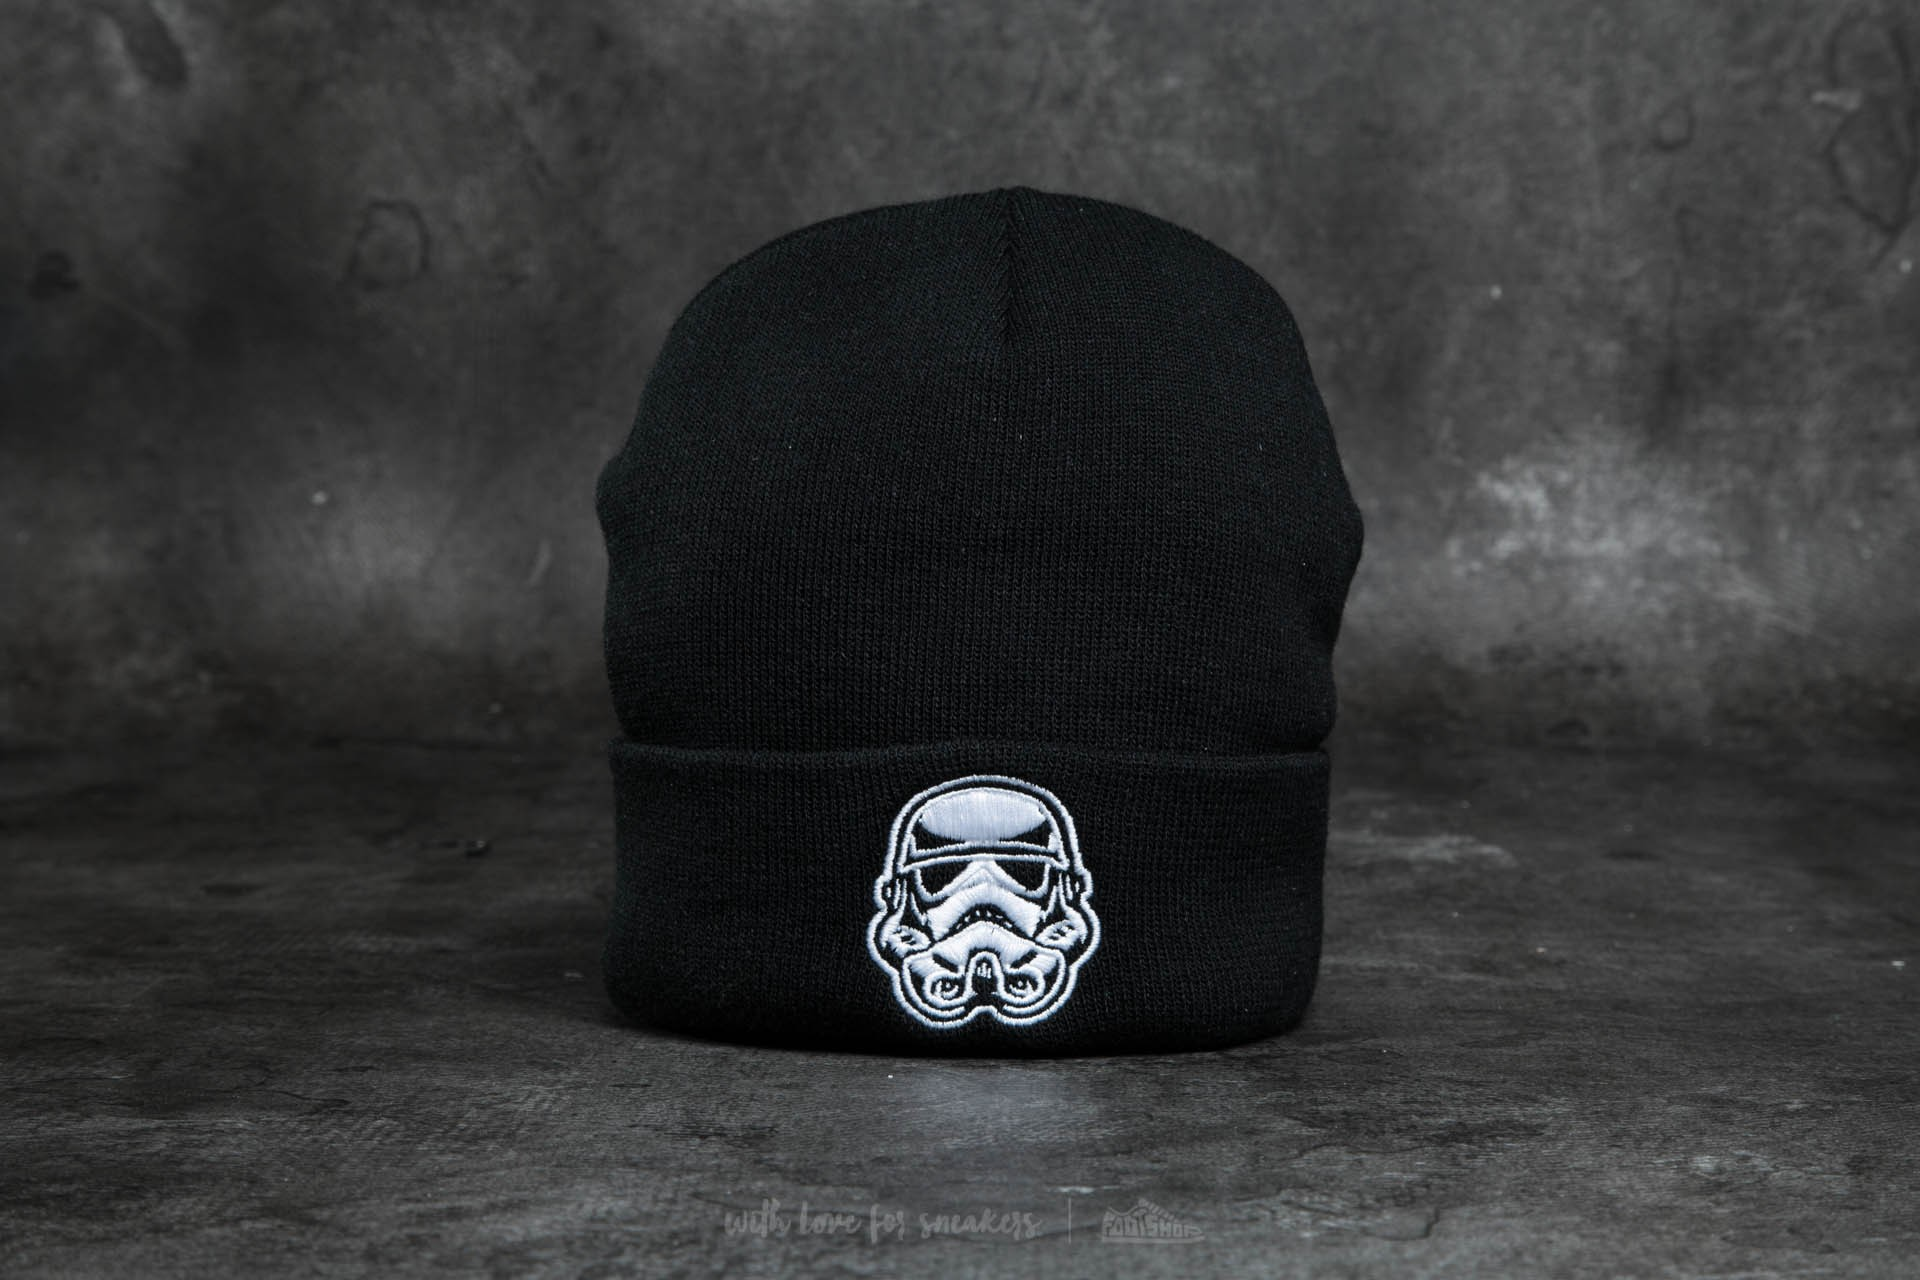 Dedicated x Star Wars Trooper Head Beanie Black - 10950